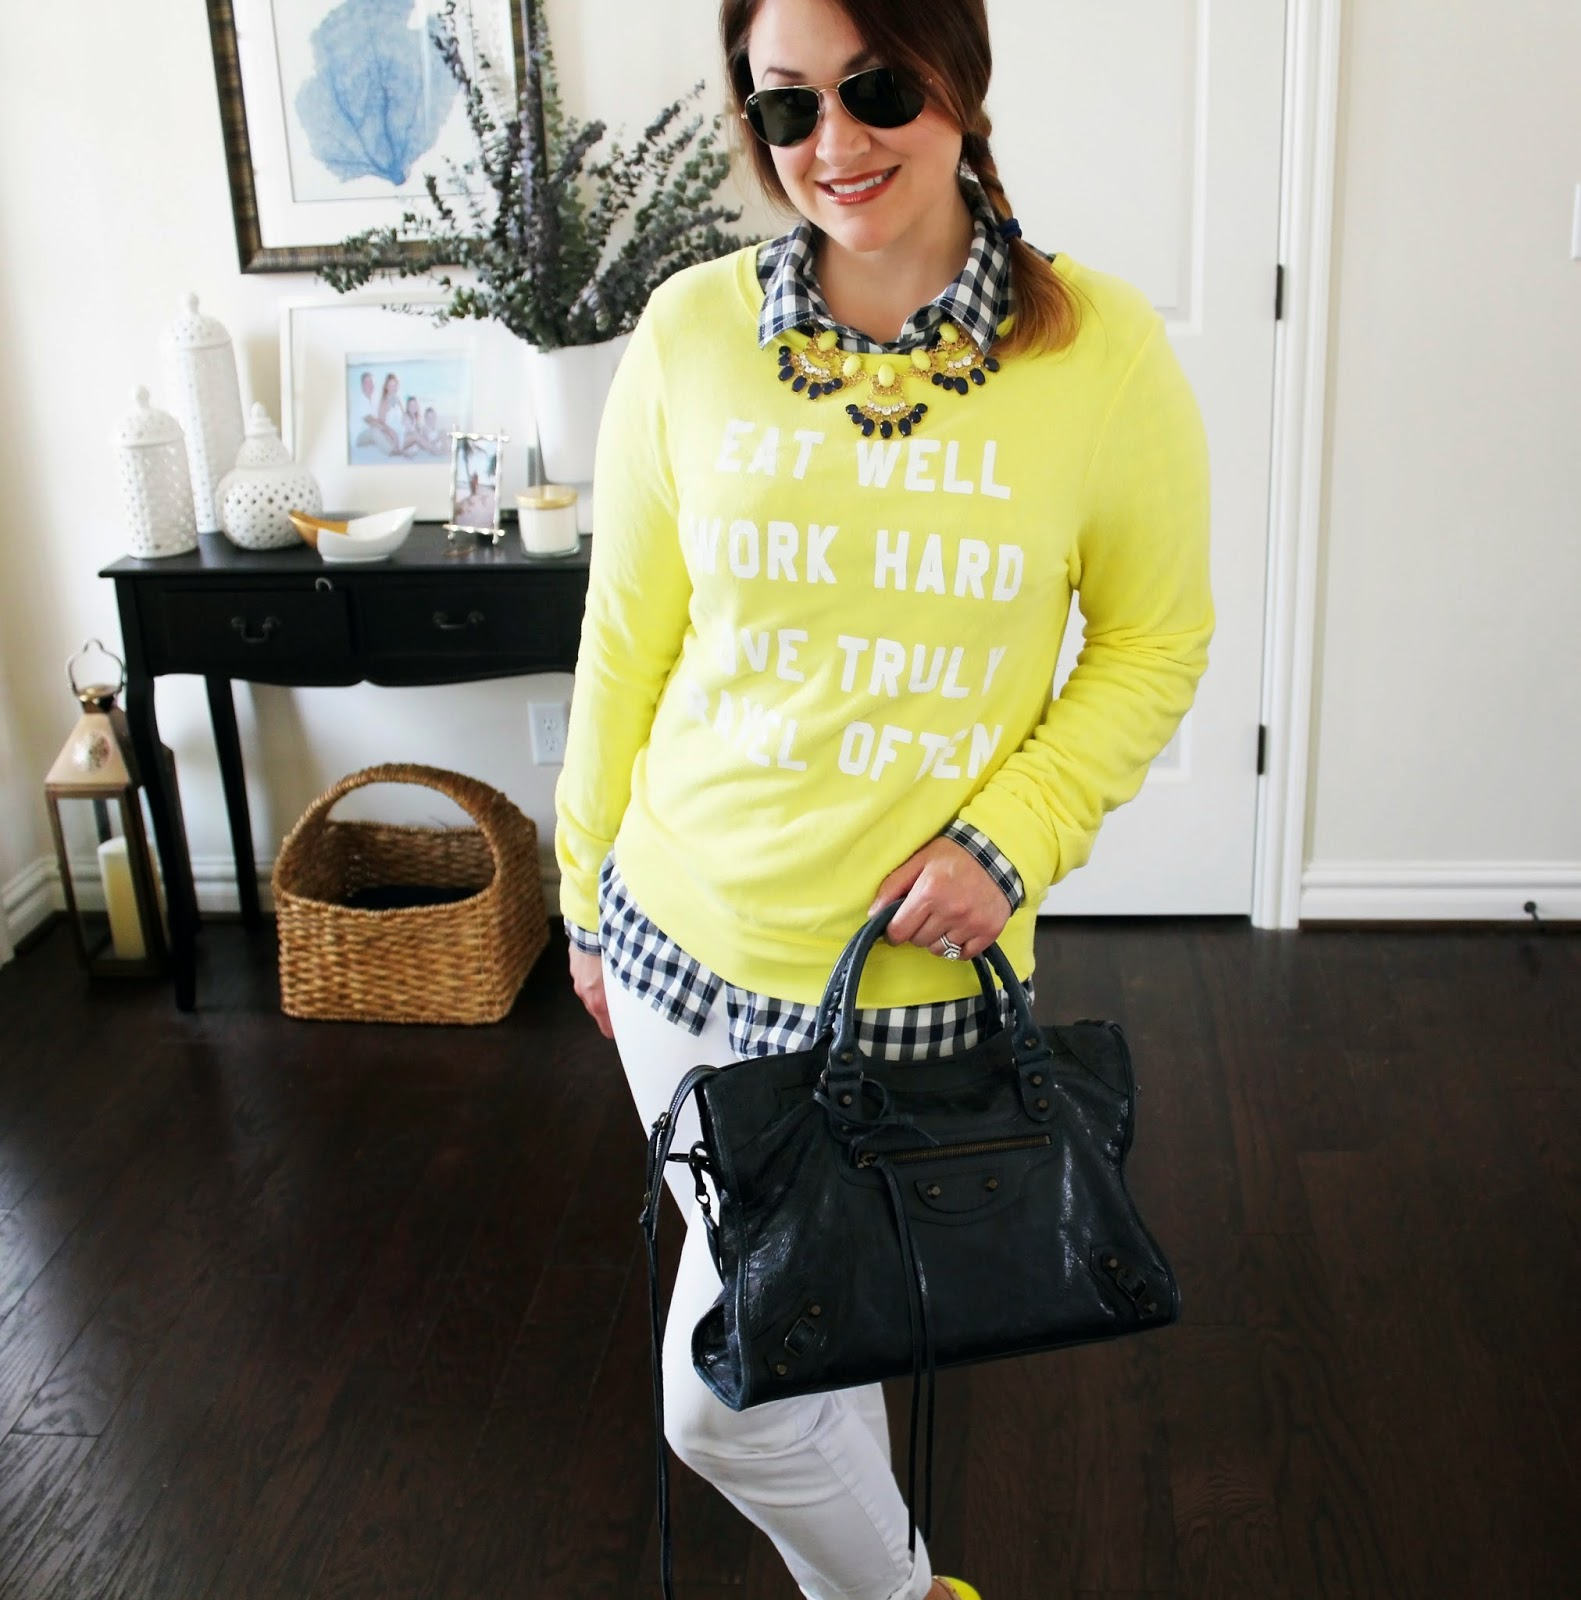 WildFox Eat Well, Work Hard, Love, White Loft Jeans, Navy Balenciaga Bag, Valentino Rocketed Flats